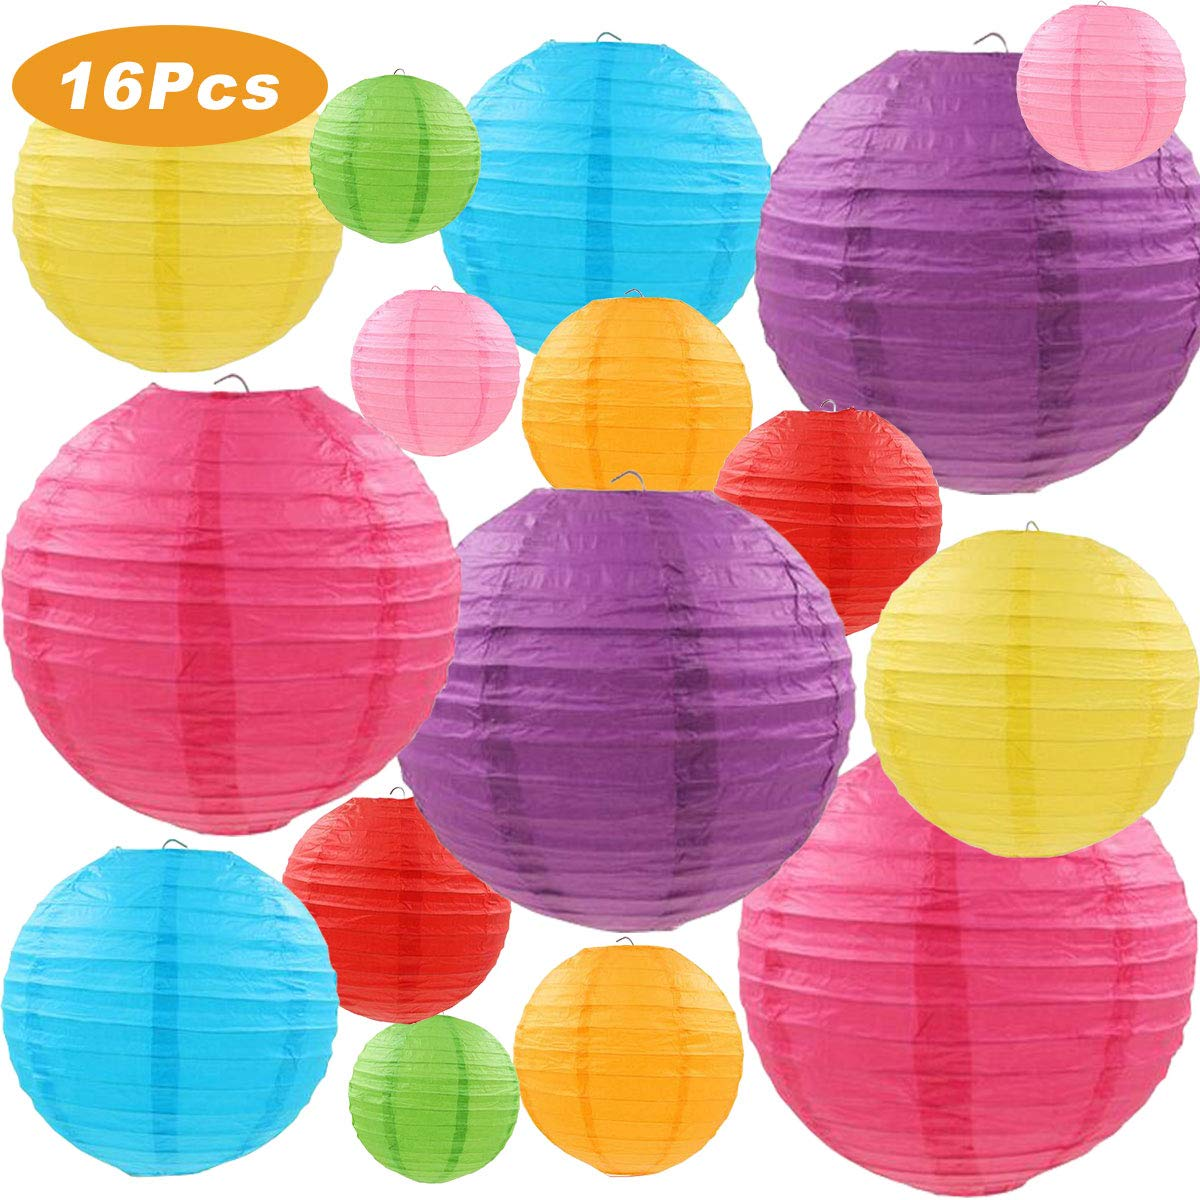 """LURICO 16 Pcs Colorful Paper Lanterns (Multicolor,Size of 4"""", 6"""", 8"""", 10"""") - Chinese/Japanese Paper Hanging Decorations Ball Lanterns Lamps for Home Decor, Parties, and Weddings"""